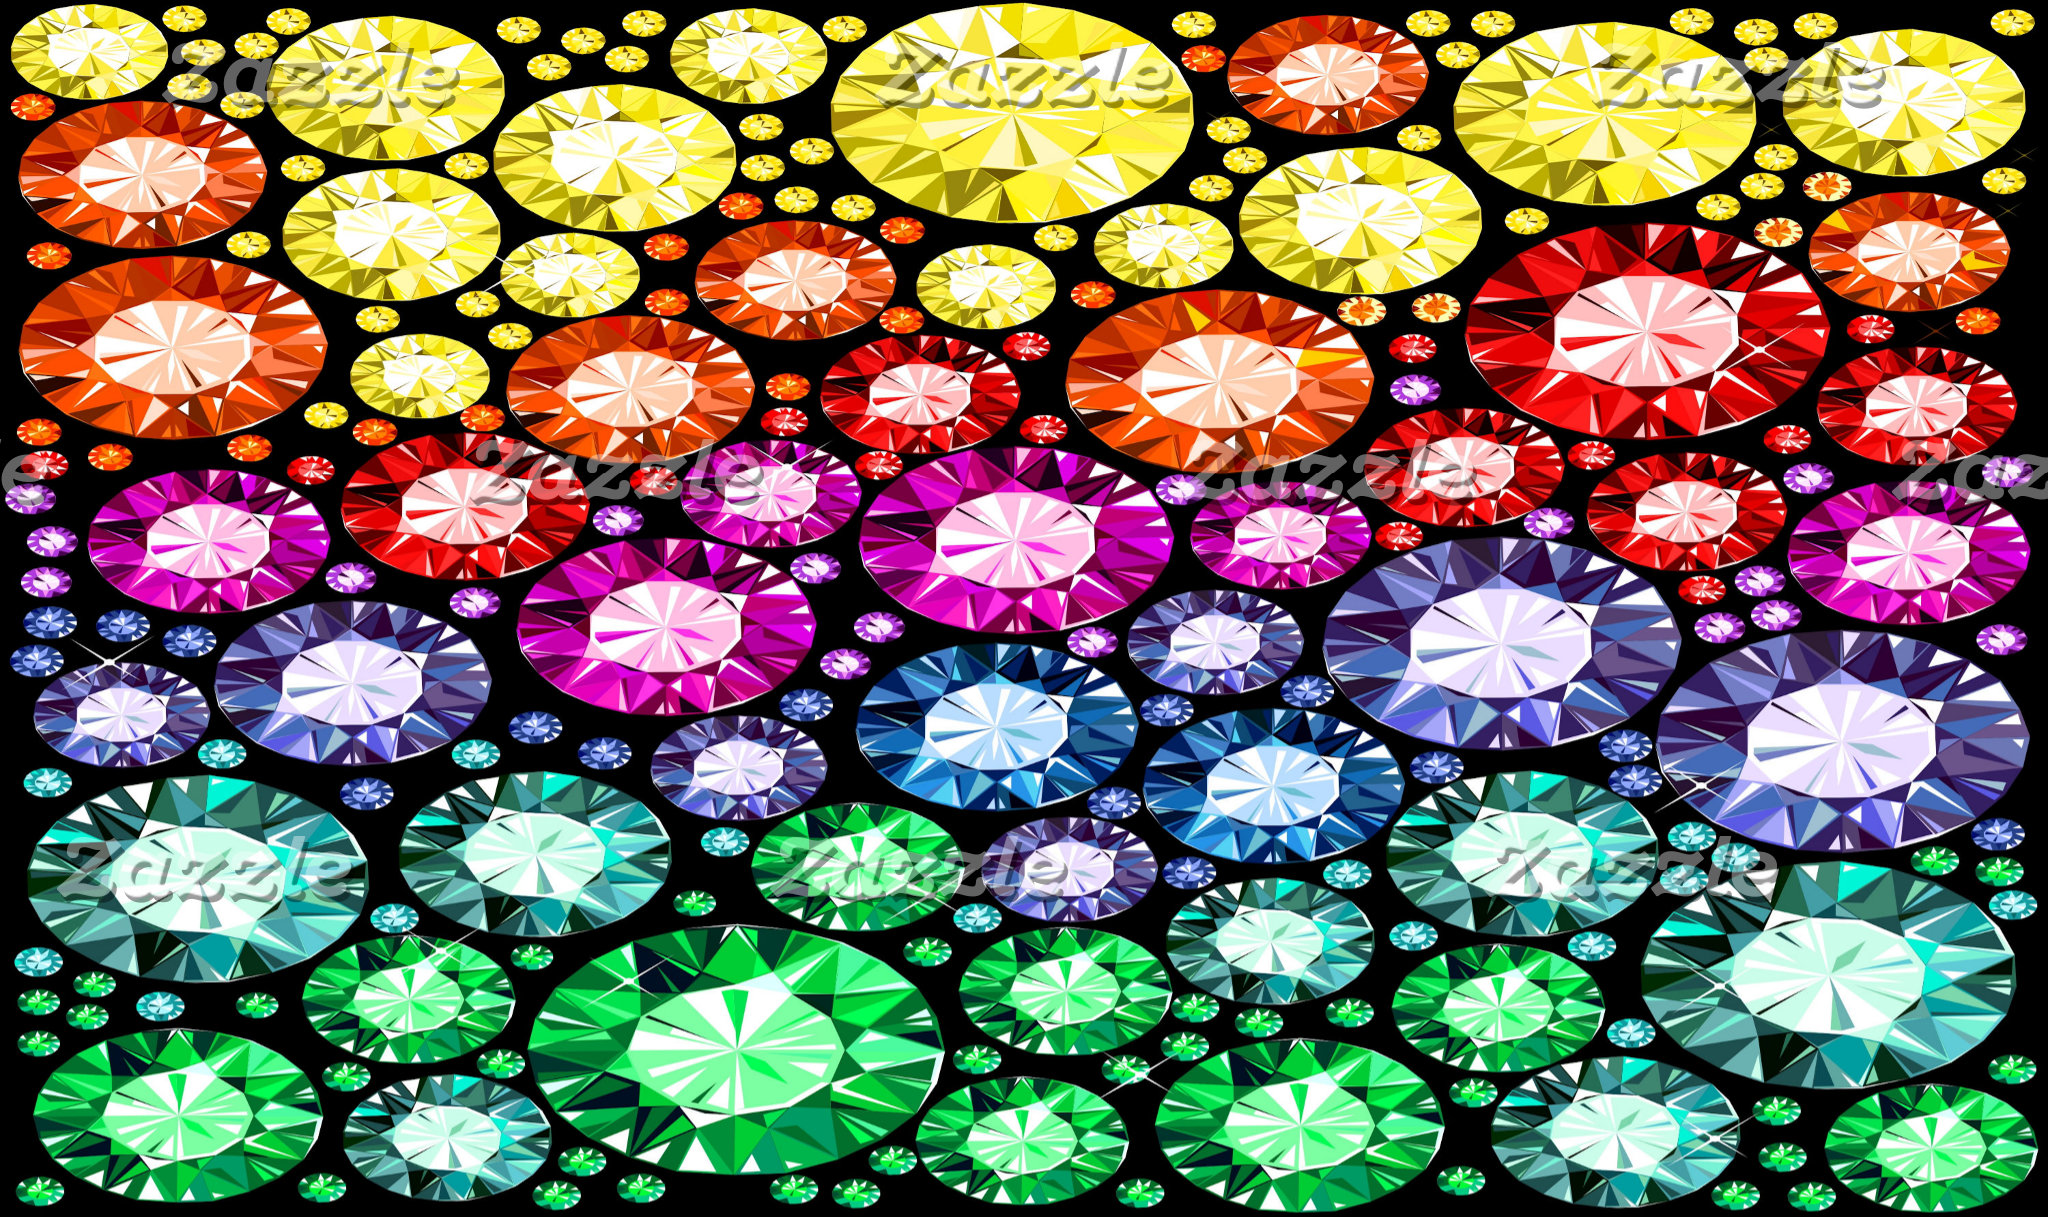 BLING - See All Categories for More